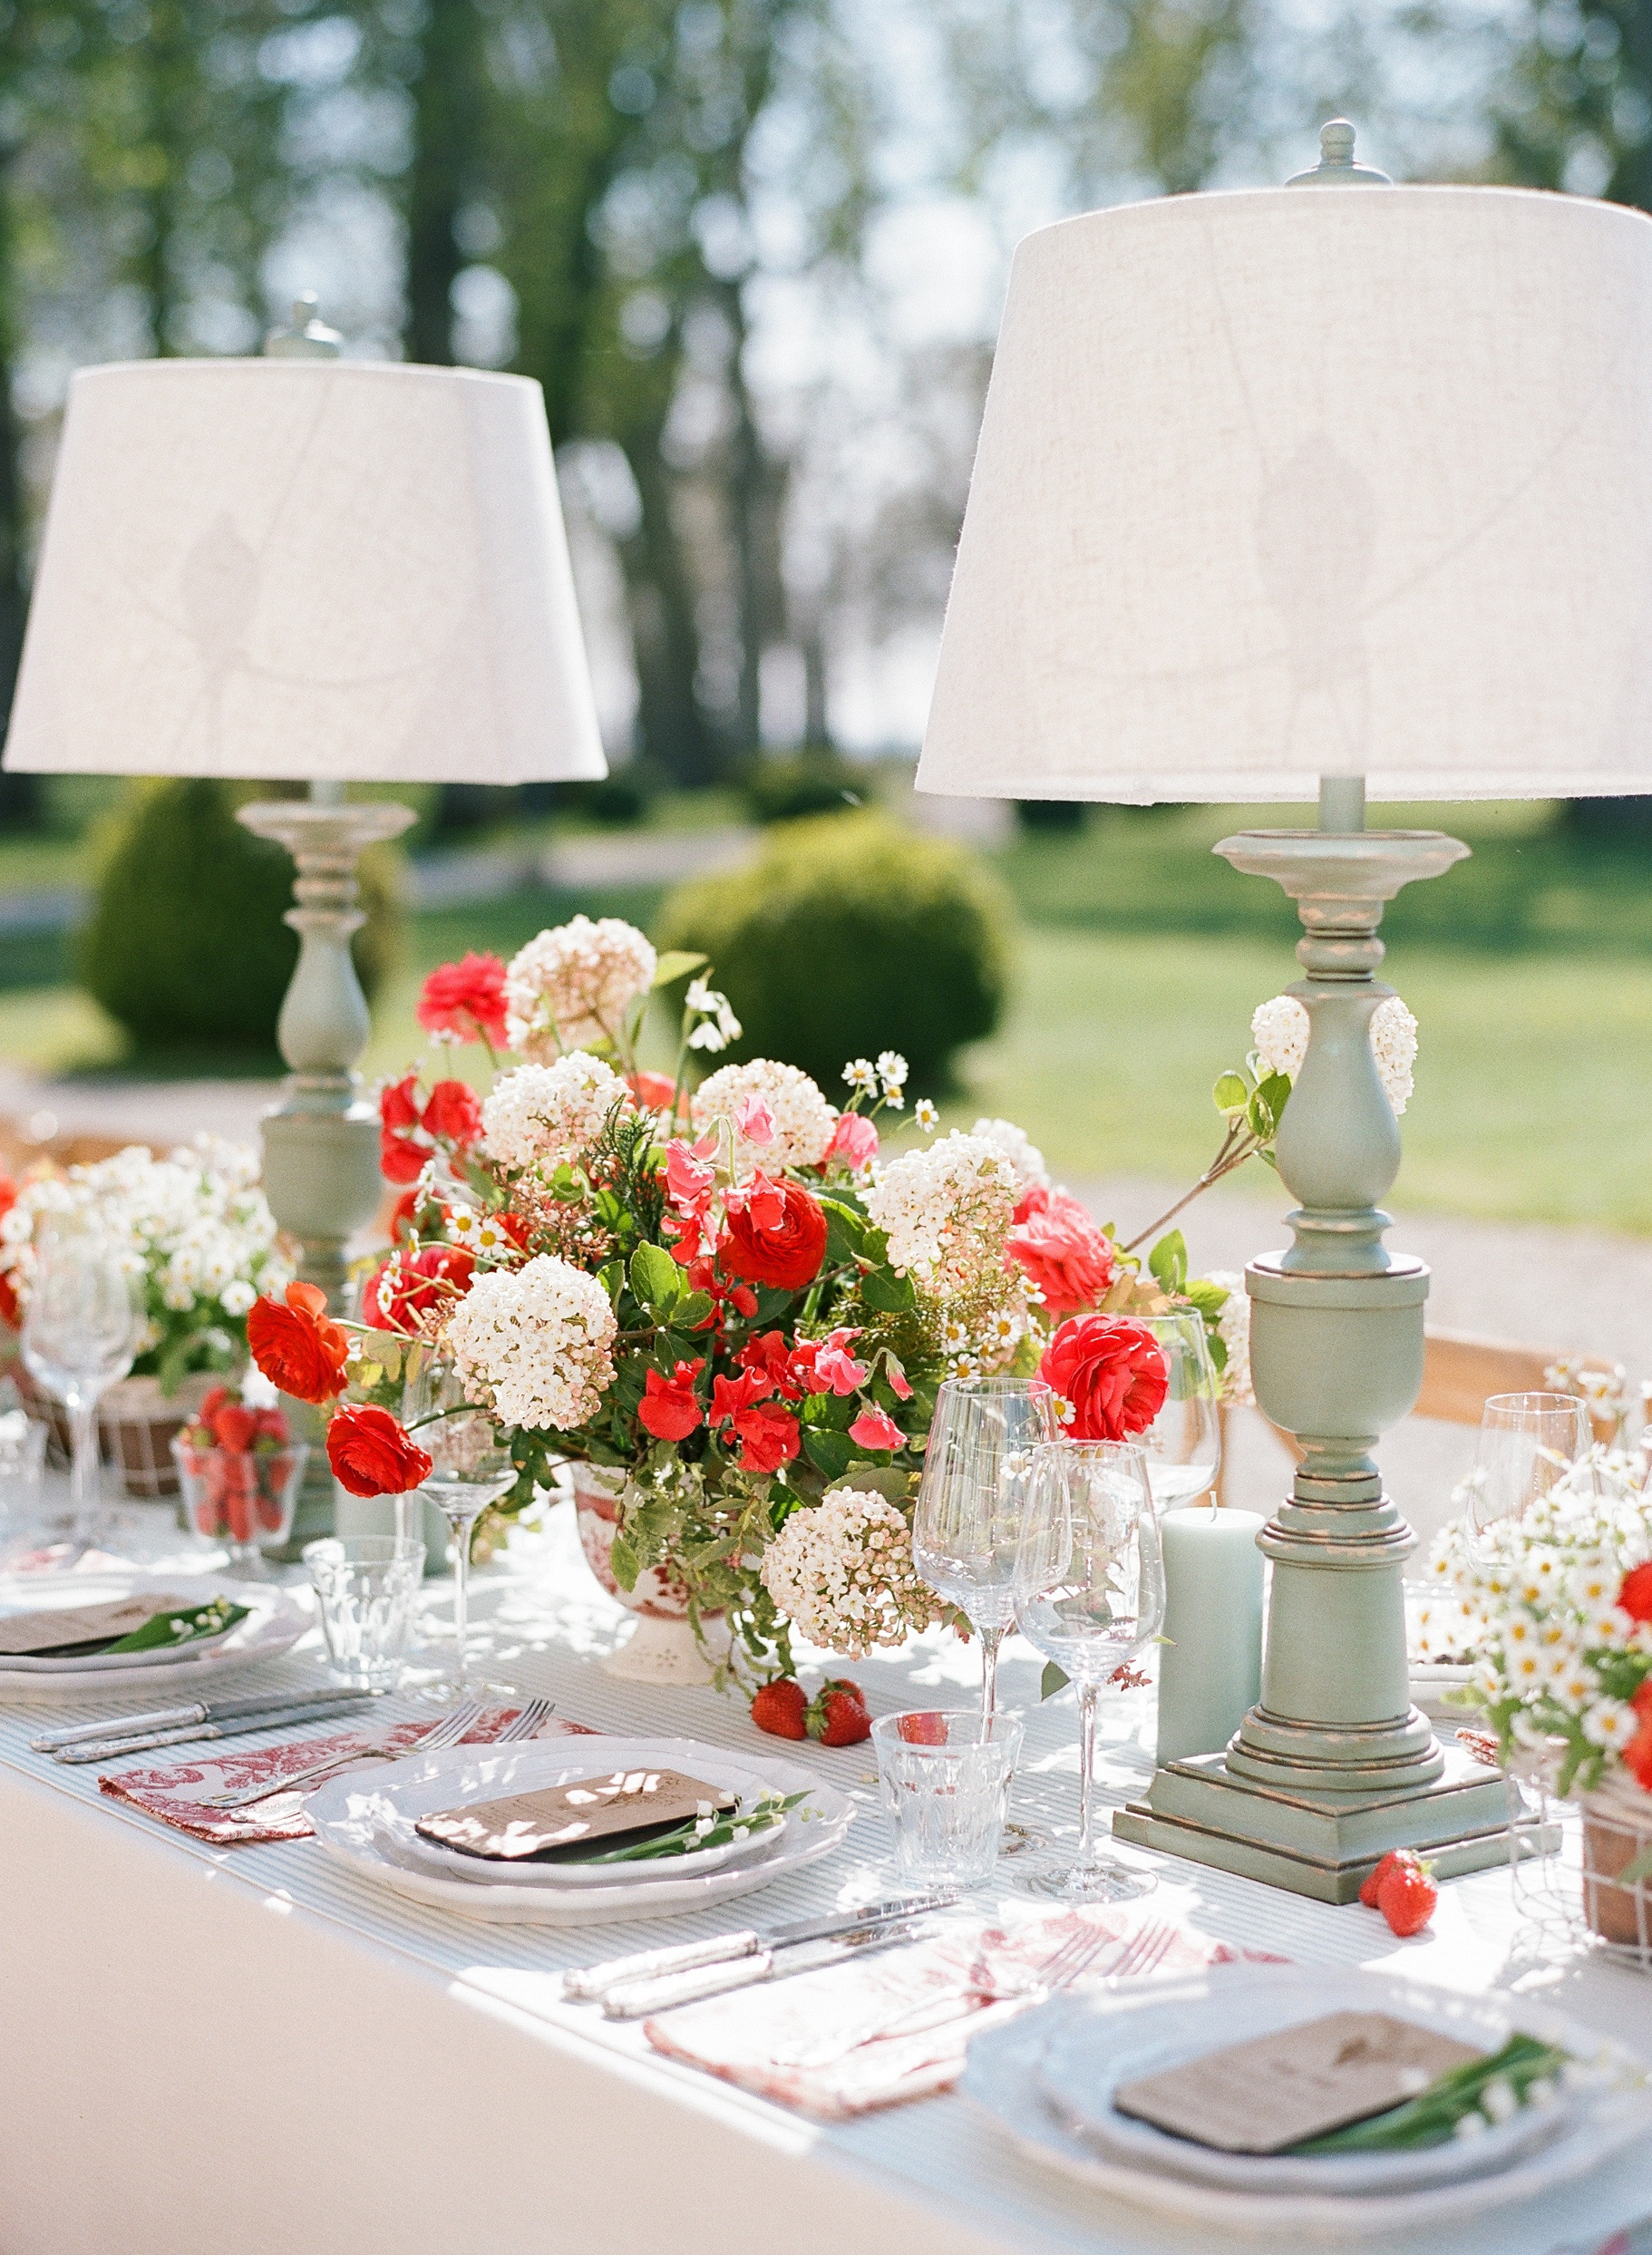 Sylvie-Gil-0020-Workshop-film-photography-chateau-wedding-france-reception-outdoor-red-welcome-dinner.jpg